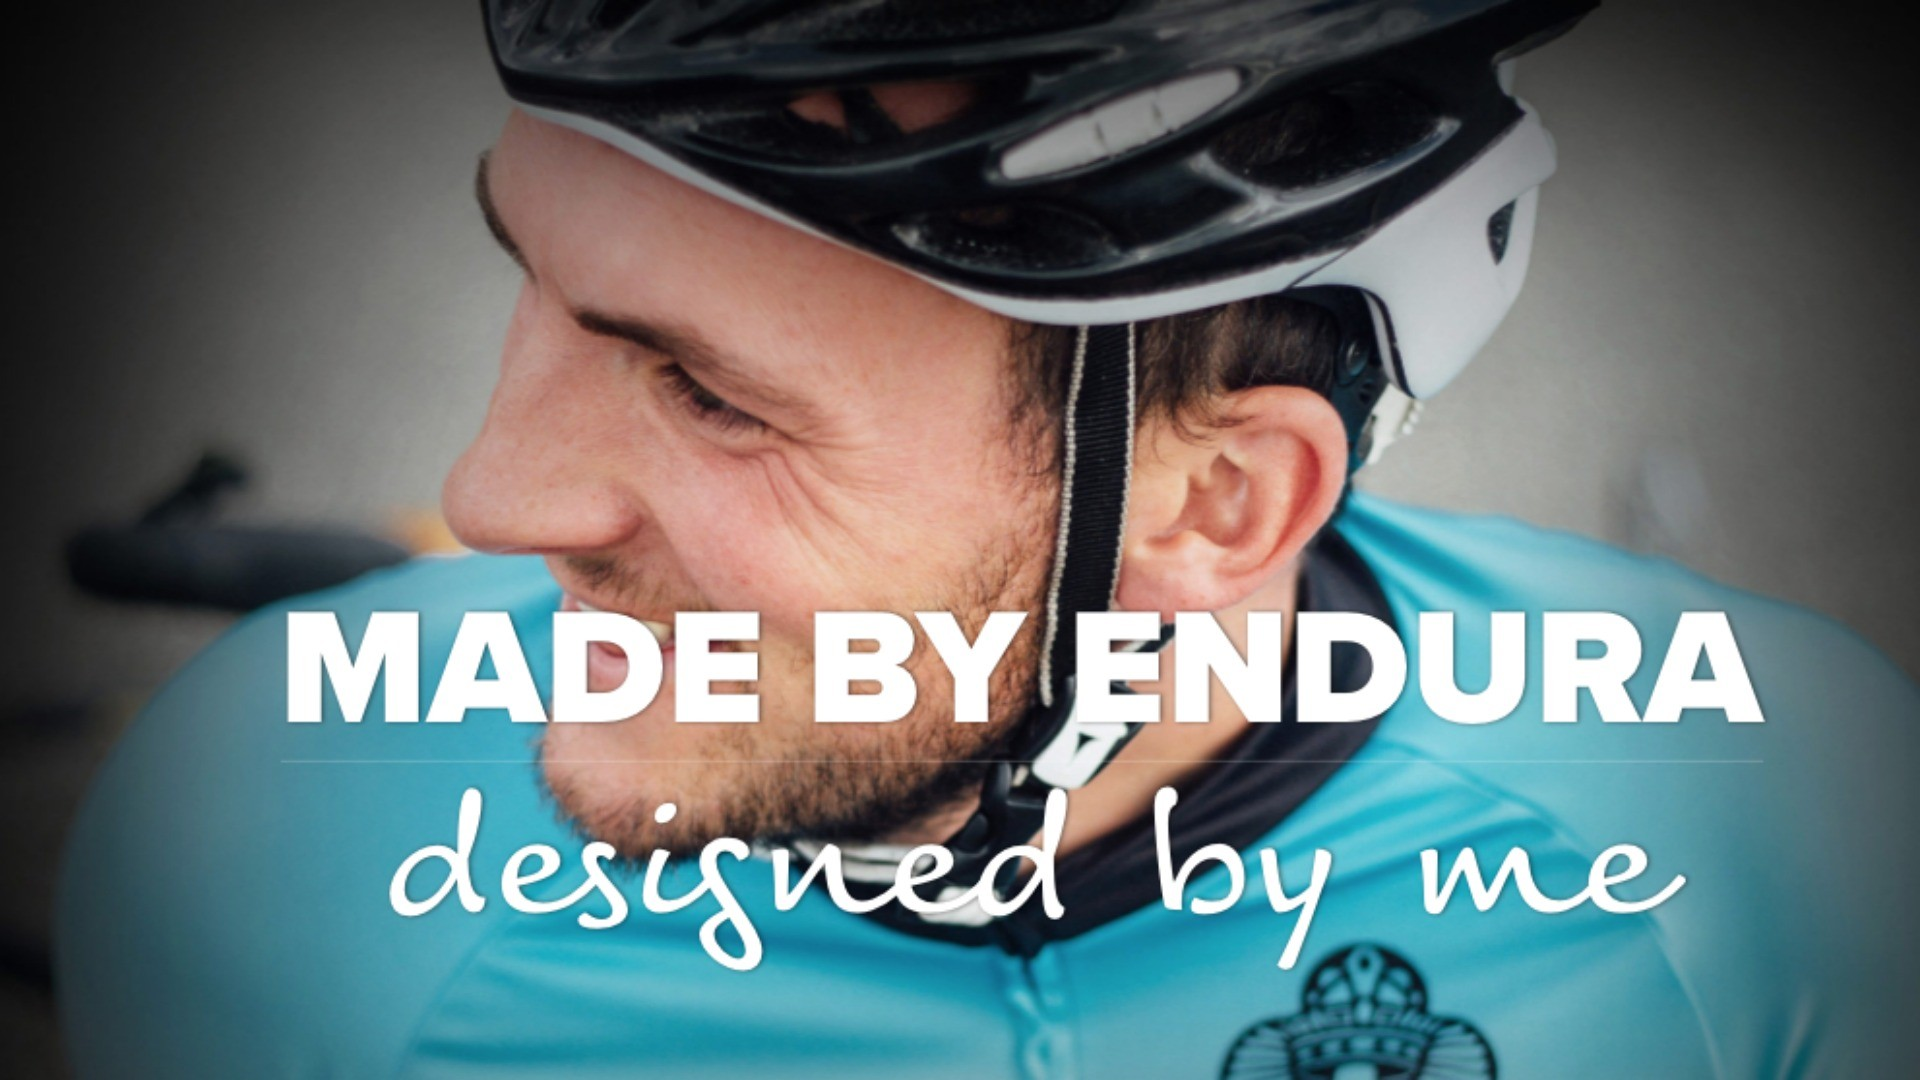 A minimum order size of 1 opens up the custom-designed garment option to many more riders